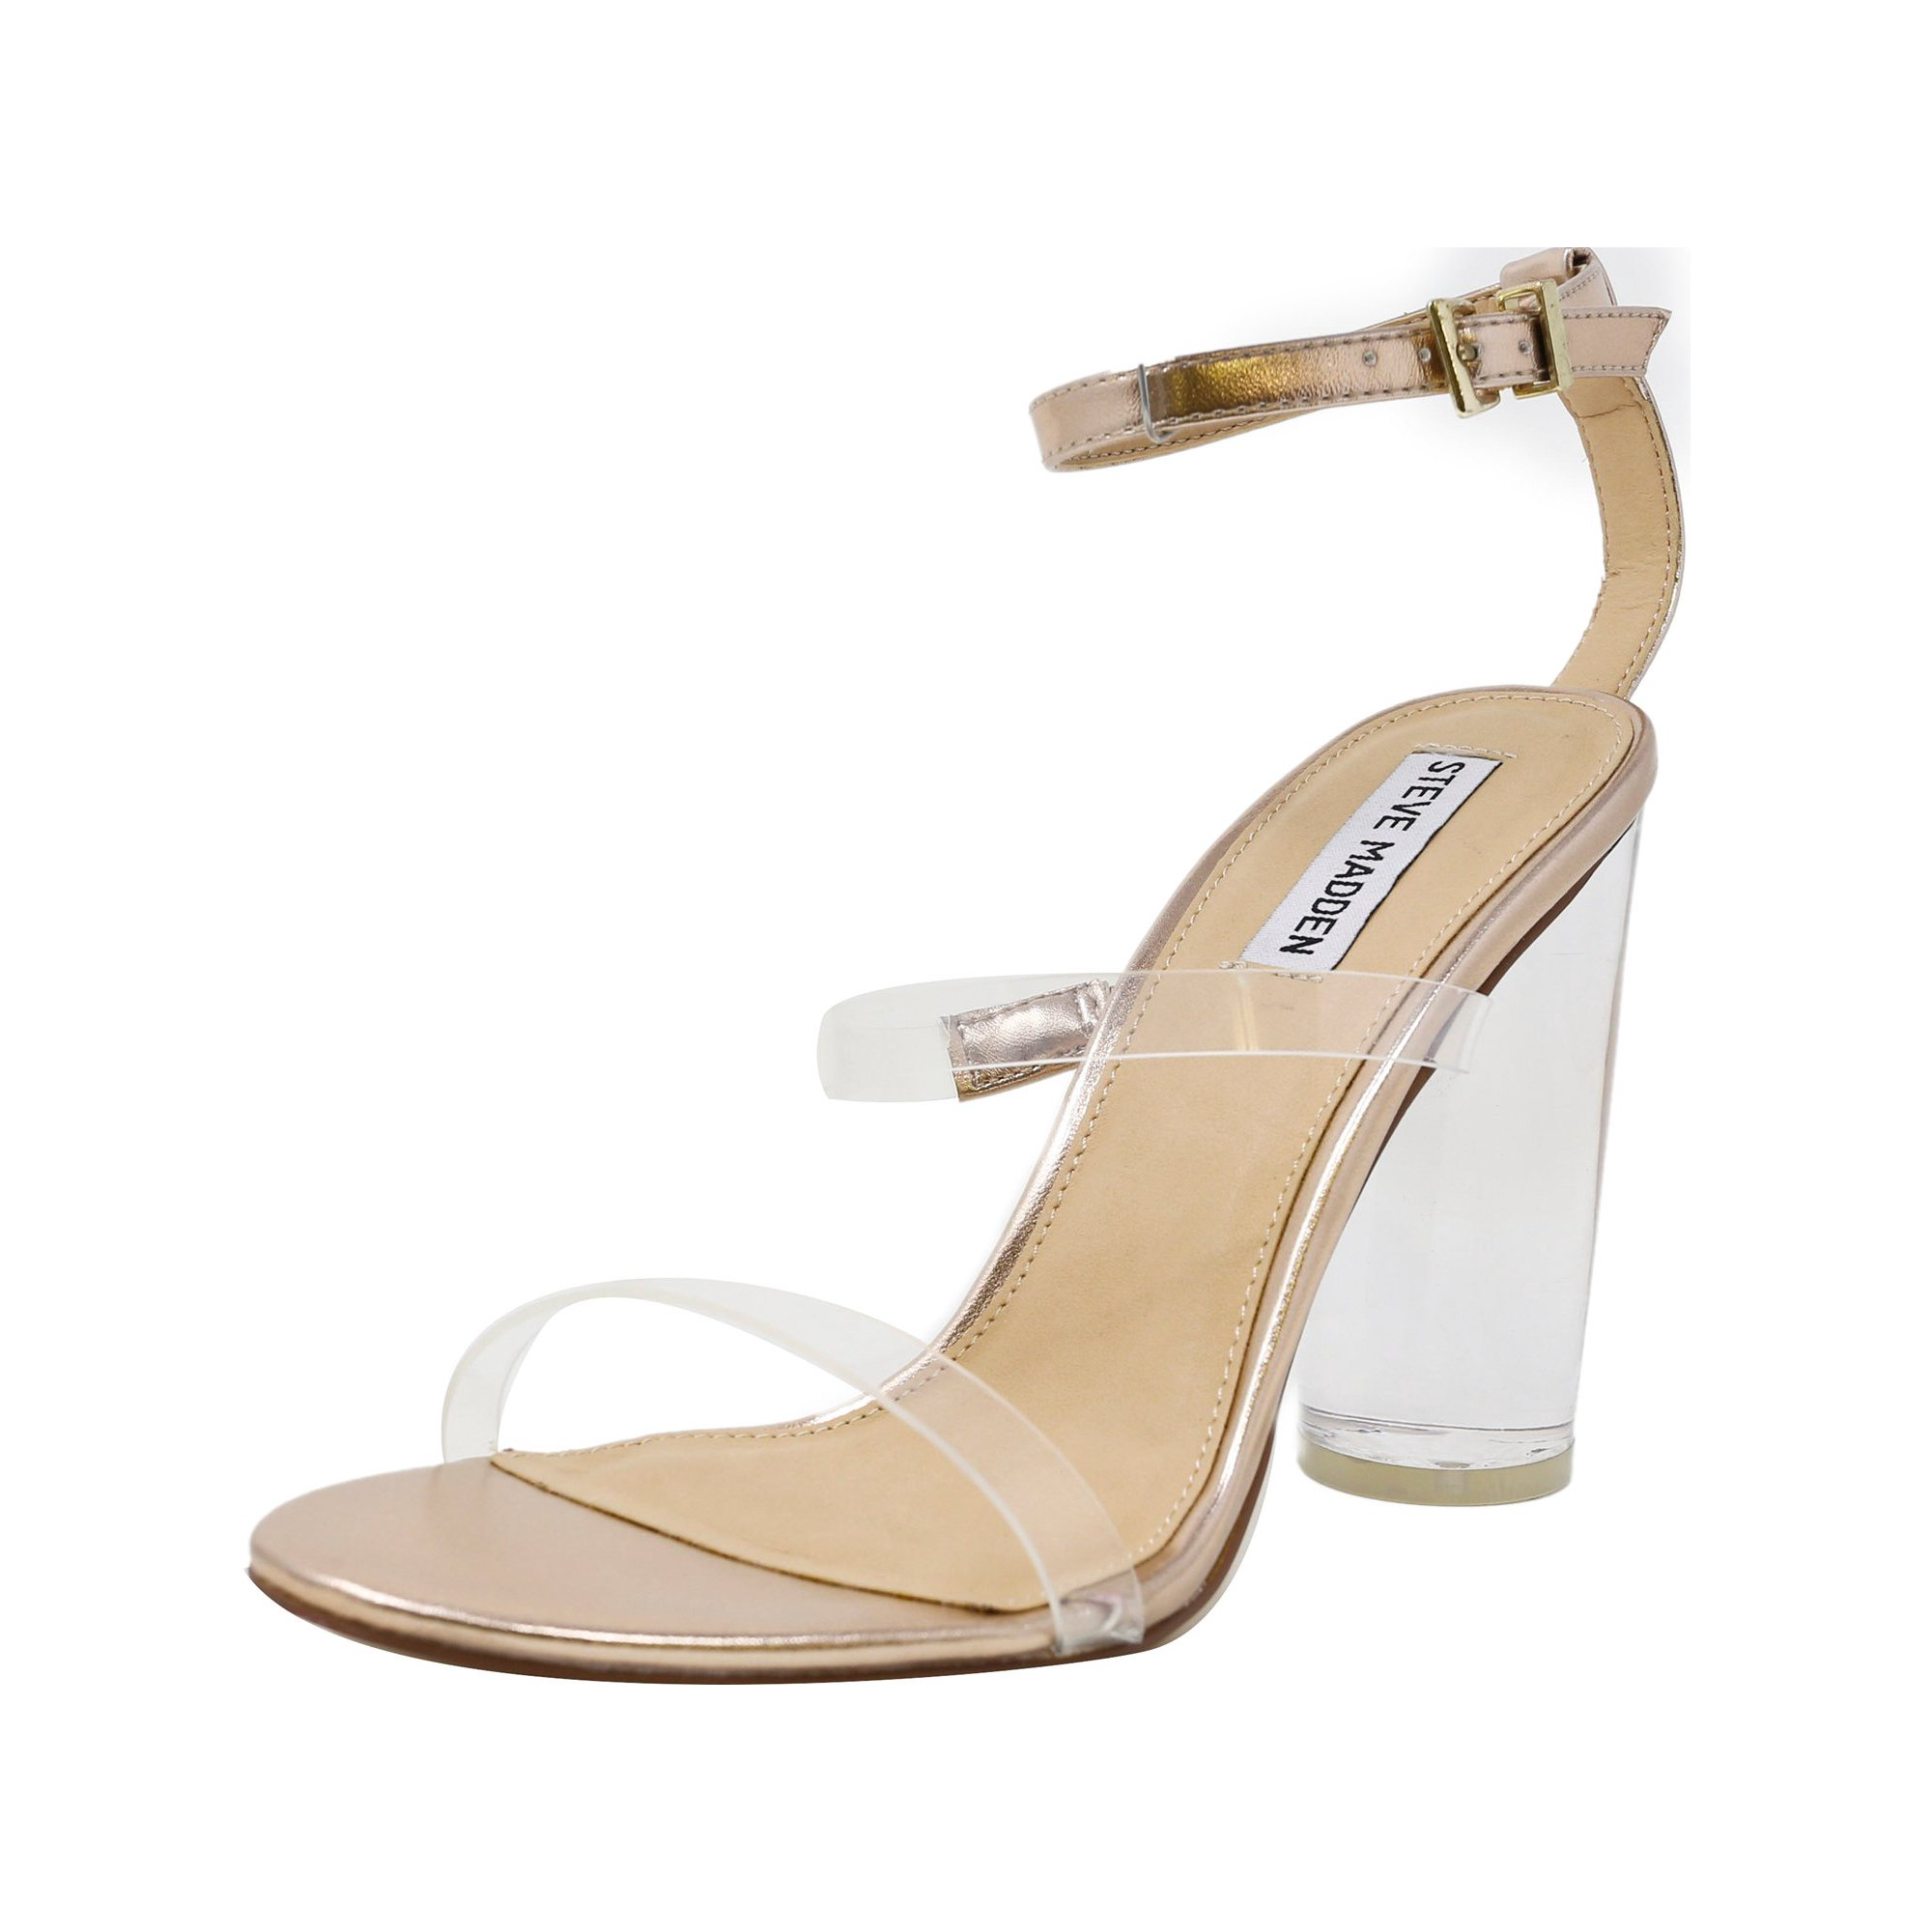 8a5d8212913 Steve Madden Women s Carnival Rose Gold Ankle-High Leather Pump - 5M ...